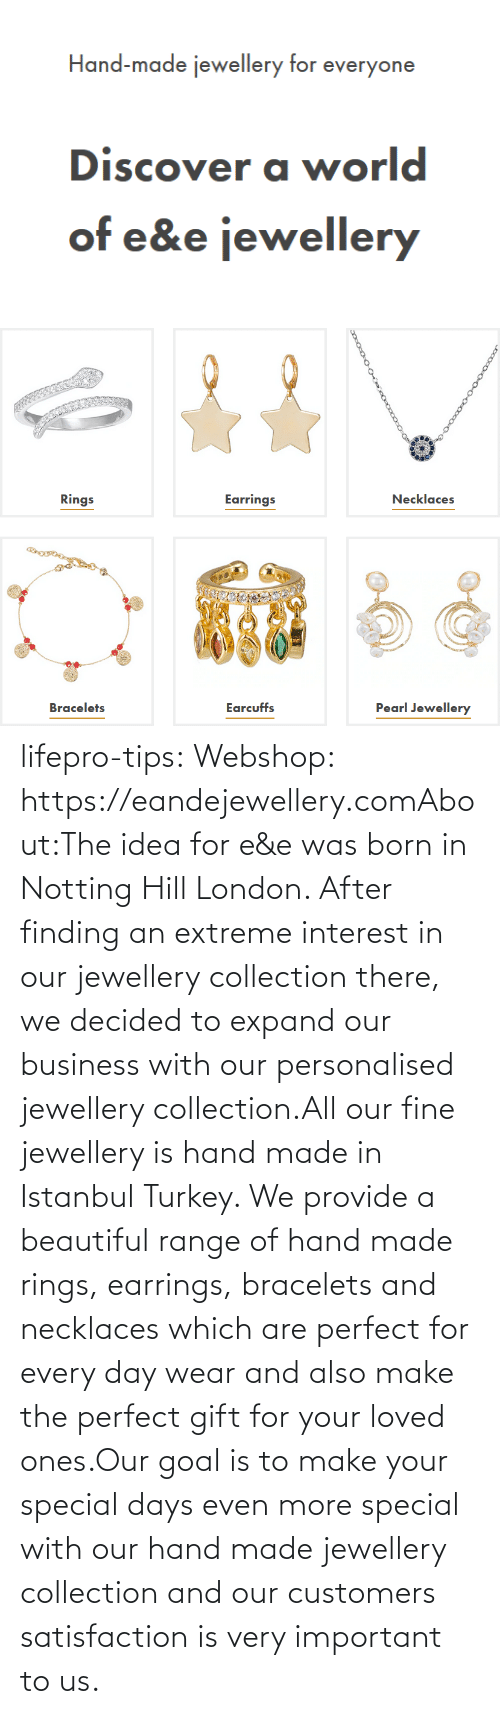 Make The: lifepro-tips: Webshop: https://eandejewellery.comAbout:The idea for e&e was born in Notting Hill London. After  finding an extreme interest in our jewellery collection there, we  decided to expand our business with our personalised jewellery  collection.All our fine jewellery is hand made in Istanbul Turkey. We  provide a beautiful range of hand made rings, earrings, bracelets and  necklaces which are perfect for every day wear and also make the perfect  gift for your loved ones.Our goal is to make your special days even more special with  our hand made jewellery collection and our customers satisfaction is  very important to us.